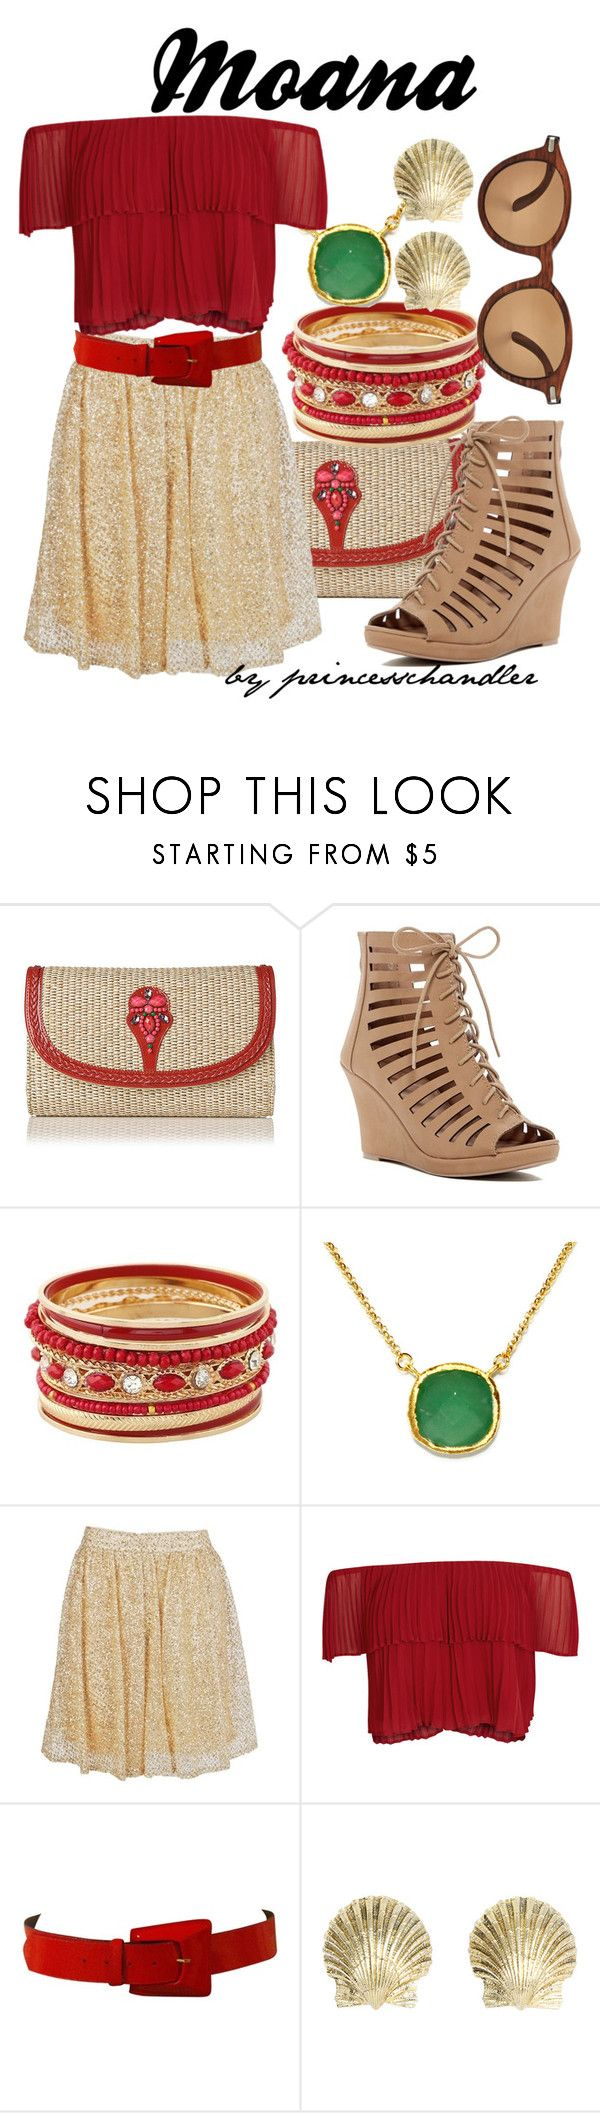 """""""Moana"""" by princesschandler on Polyvore featuring Top Guy, BillyTheTree, Boohoo, Keepsake the Label, Più & Più, Tiffany & Co., WAITING FOR THE SUN, disney, disneybound and moana"""